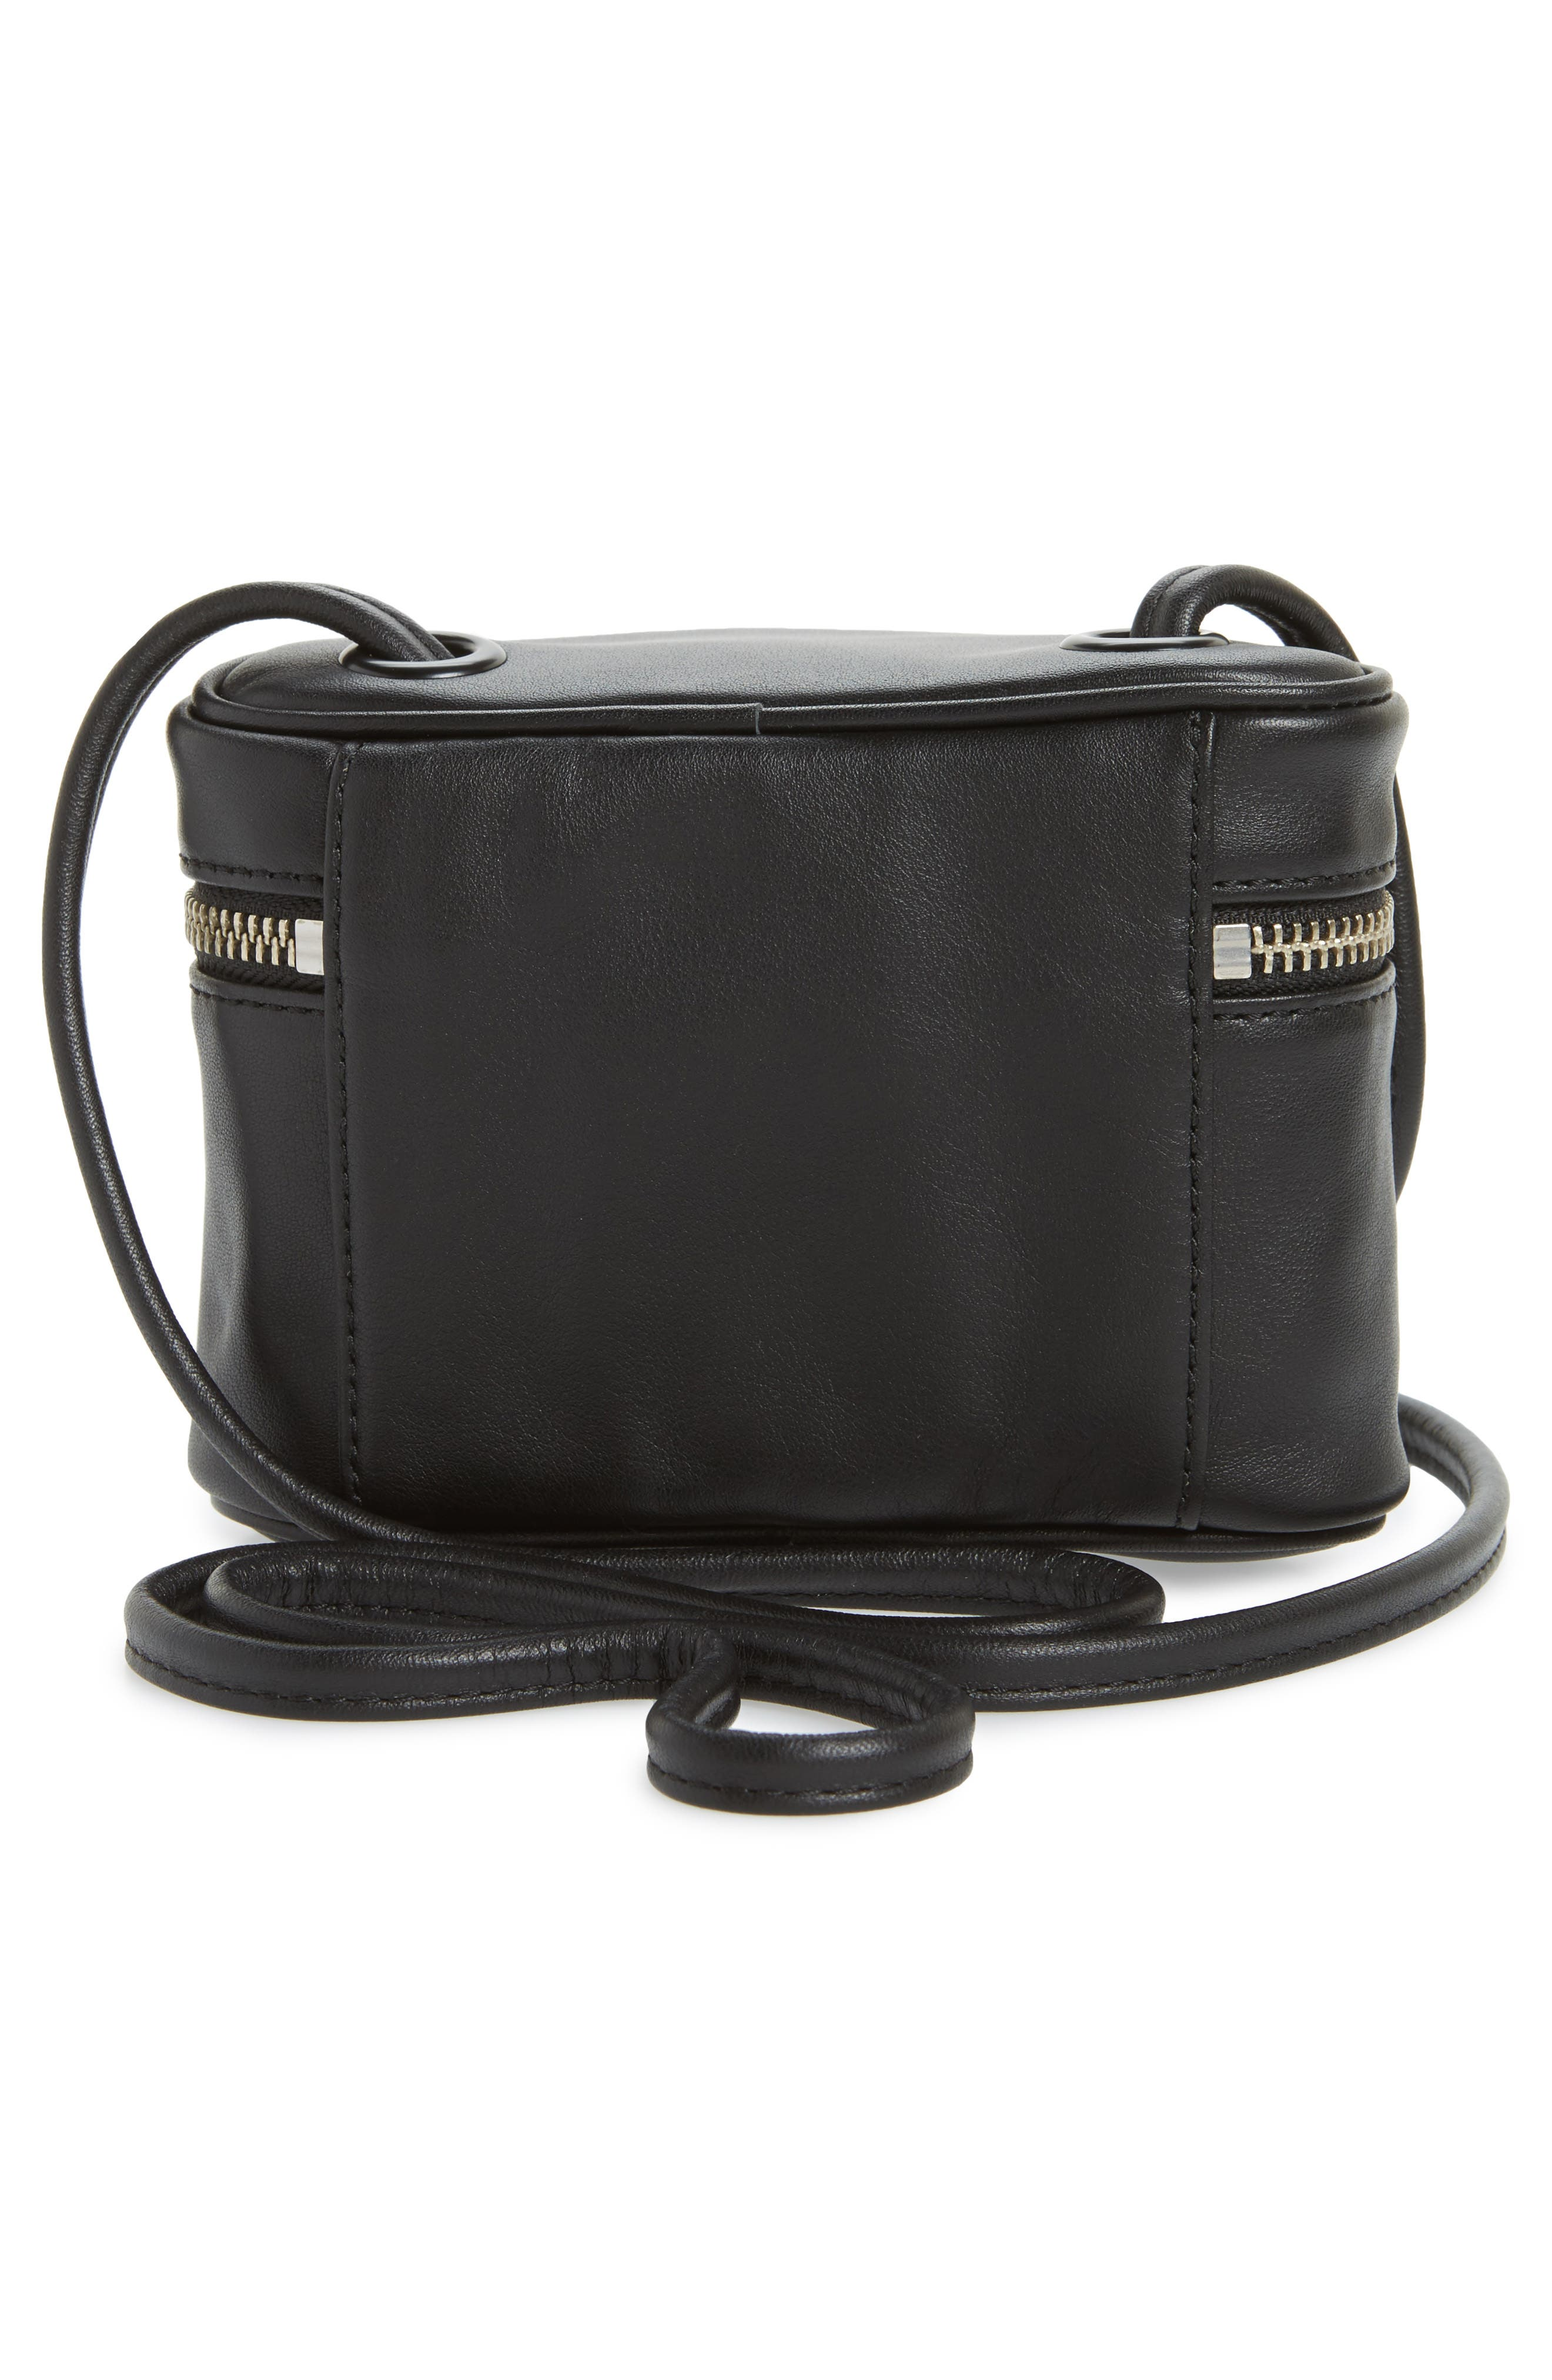 Greenwood Autumn Leather Crossbody Bag,                             Alternate thumbnail 3, color,                             001